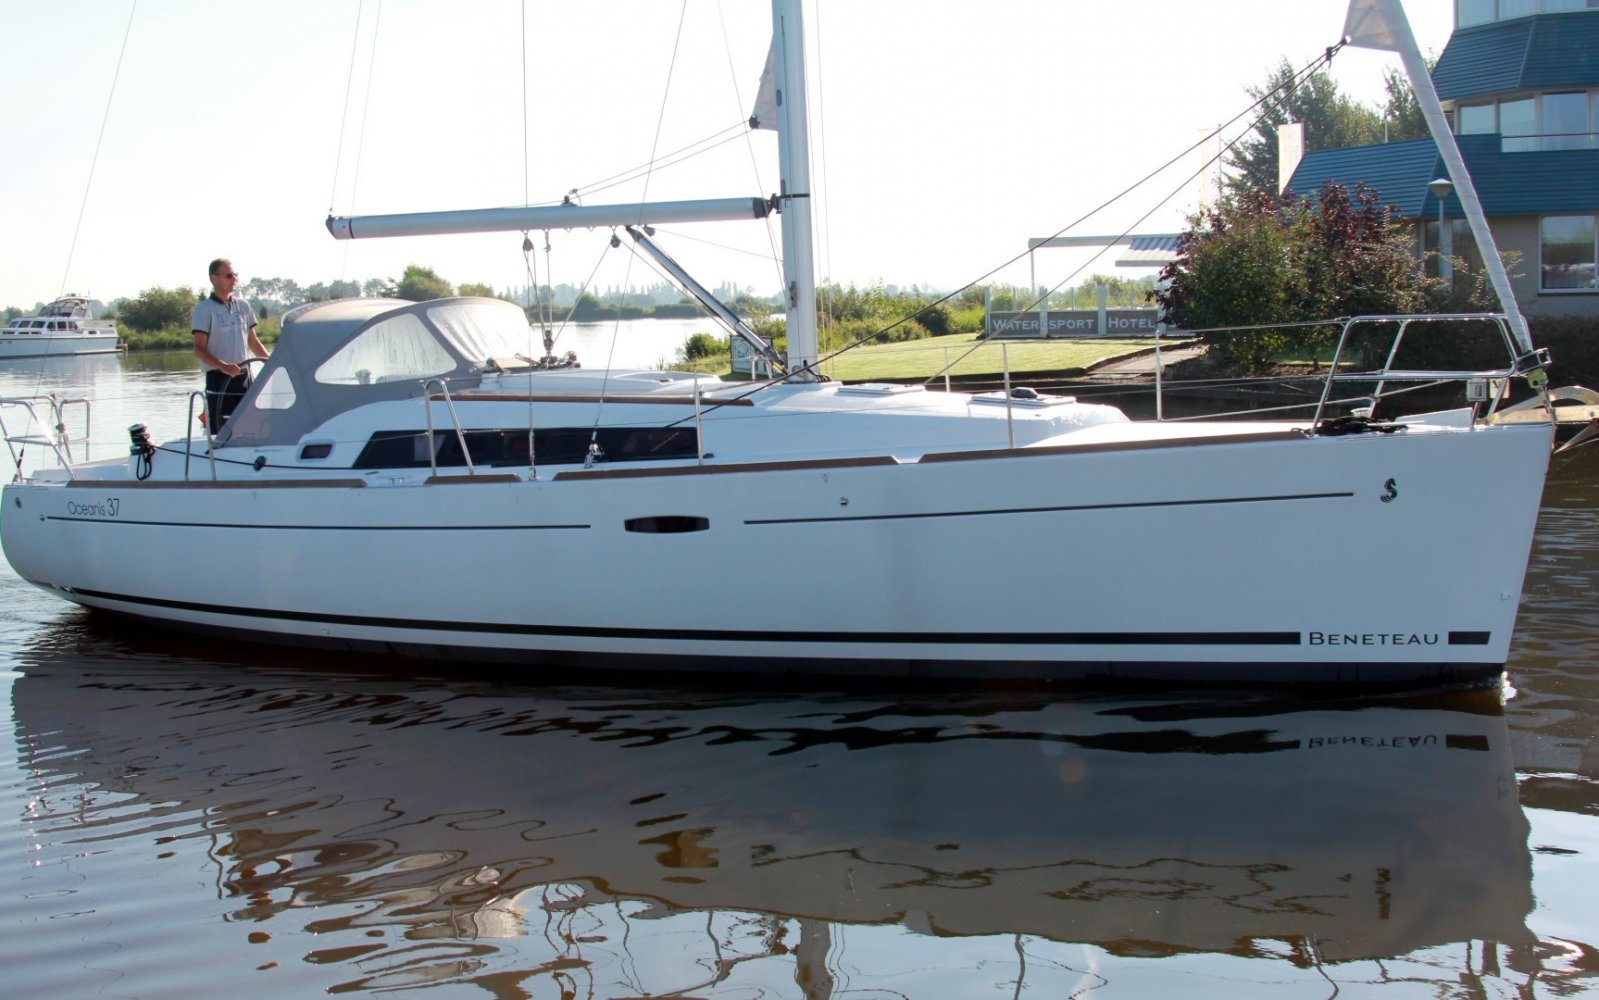 Beneteau Oceanis 37 sailboat for sale | White Whale Yachtbrokers